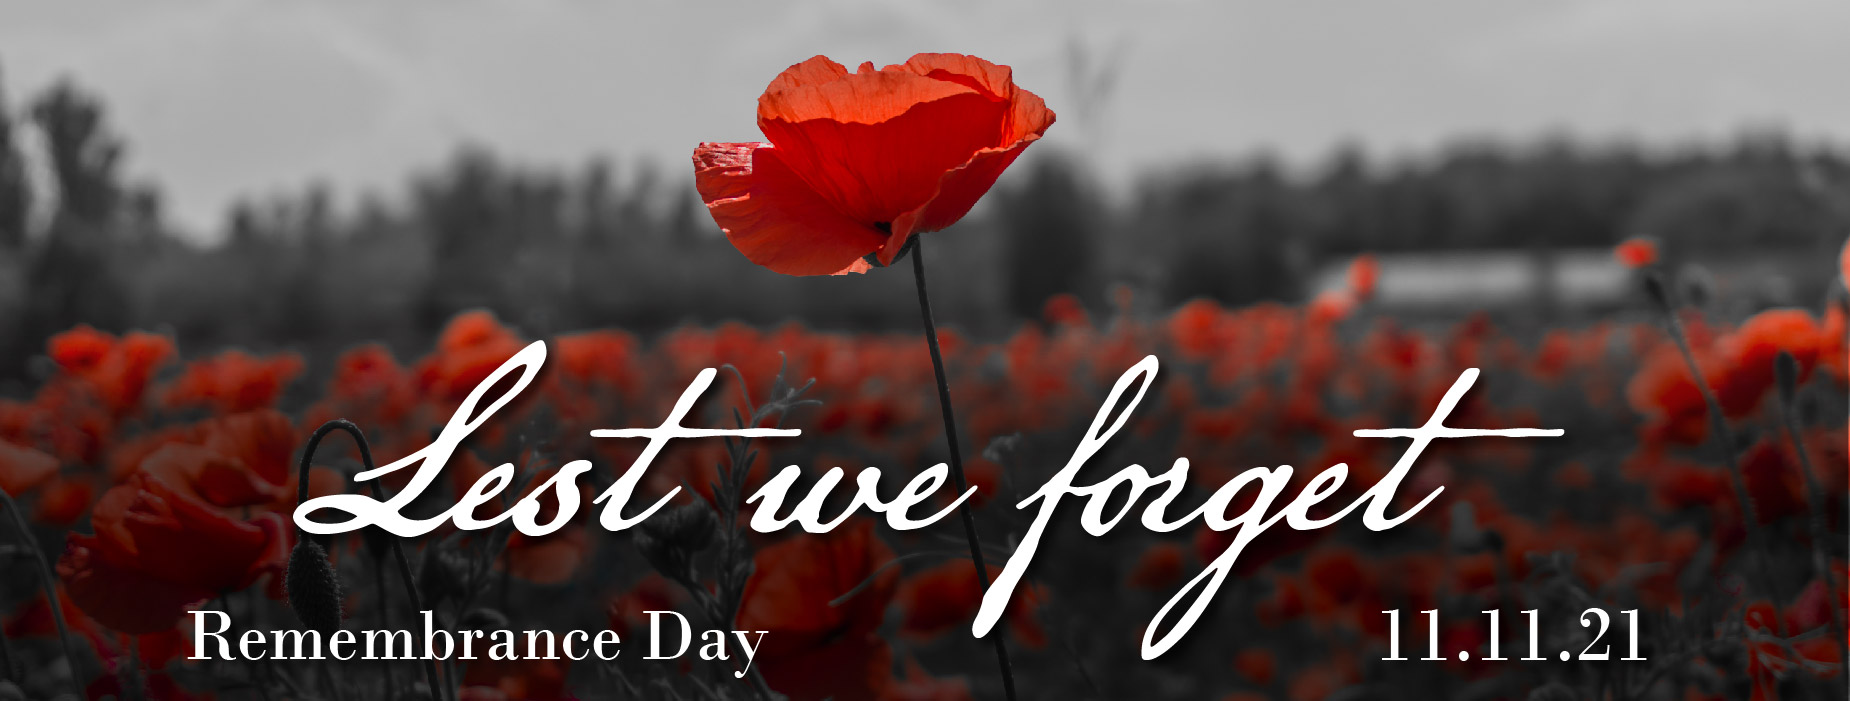 Banner Image for the Remembrance Day event